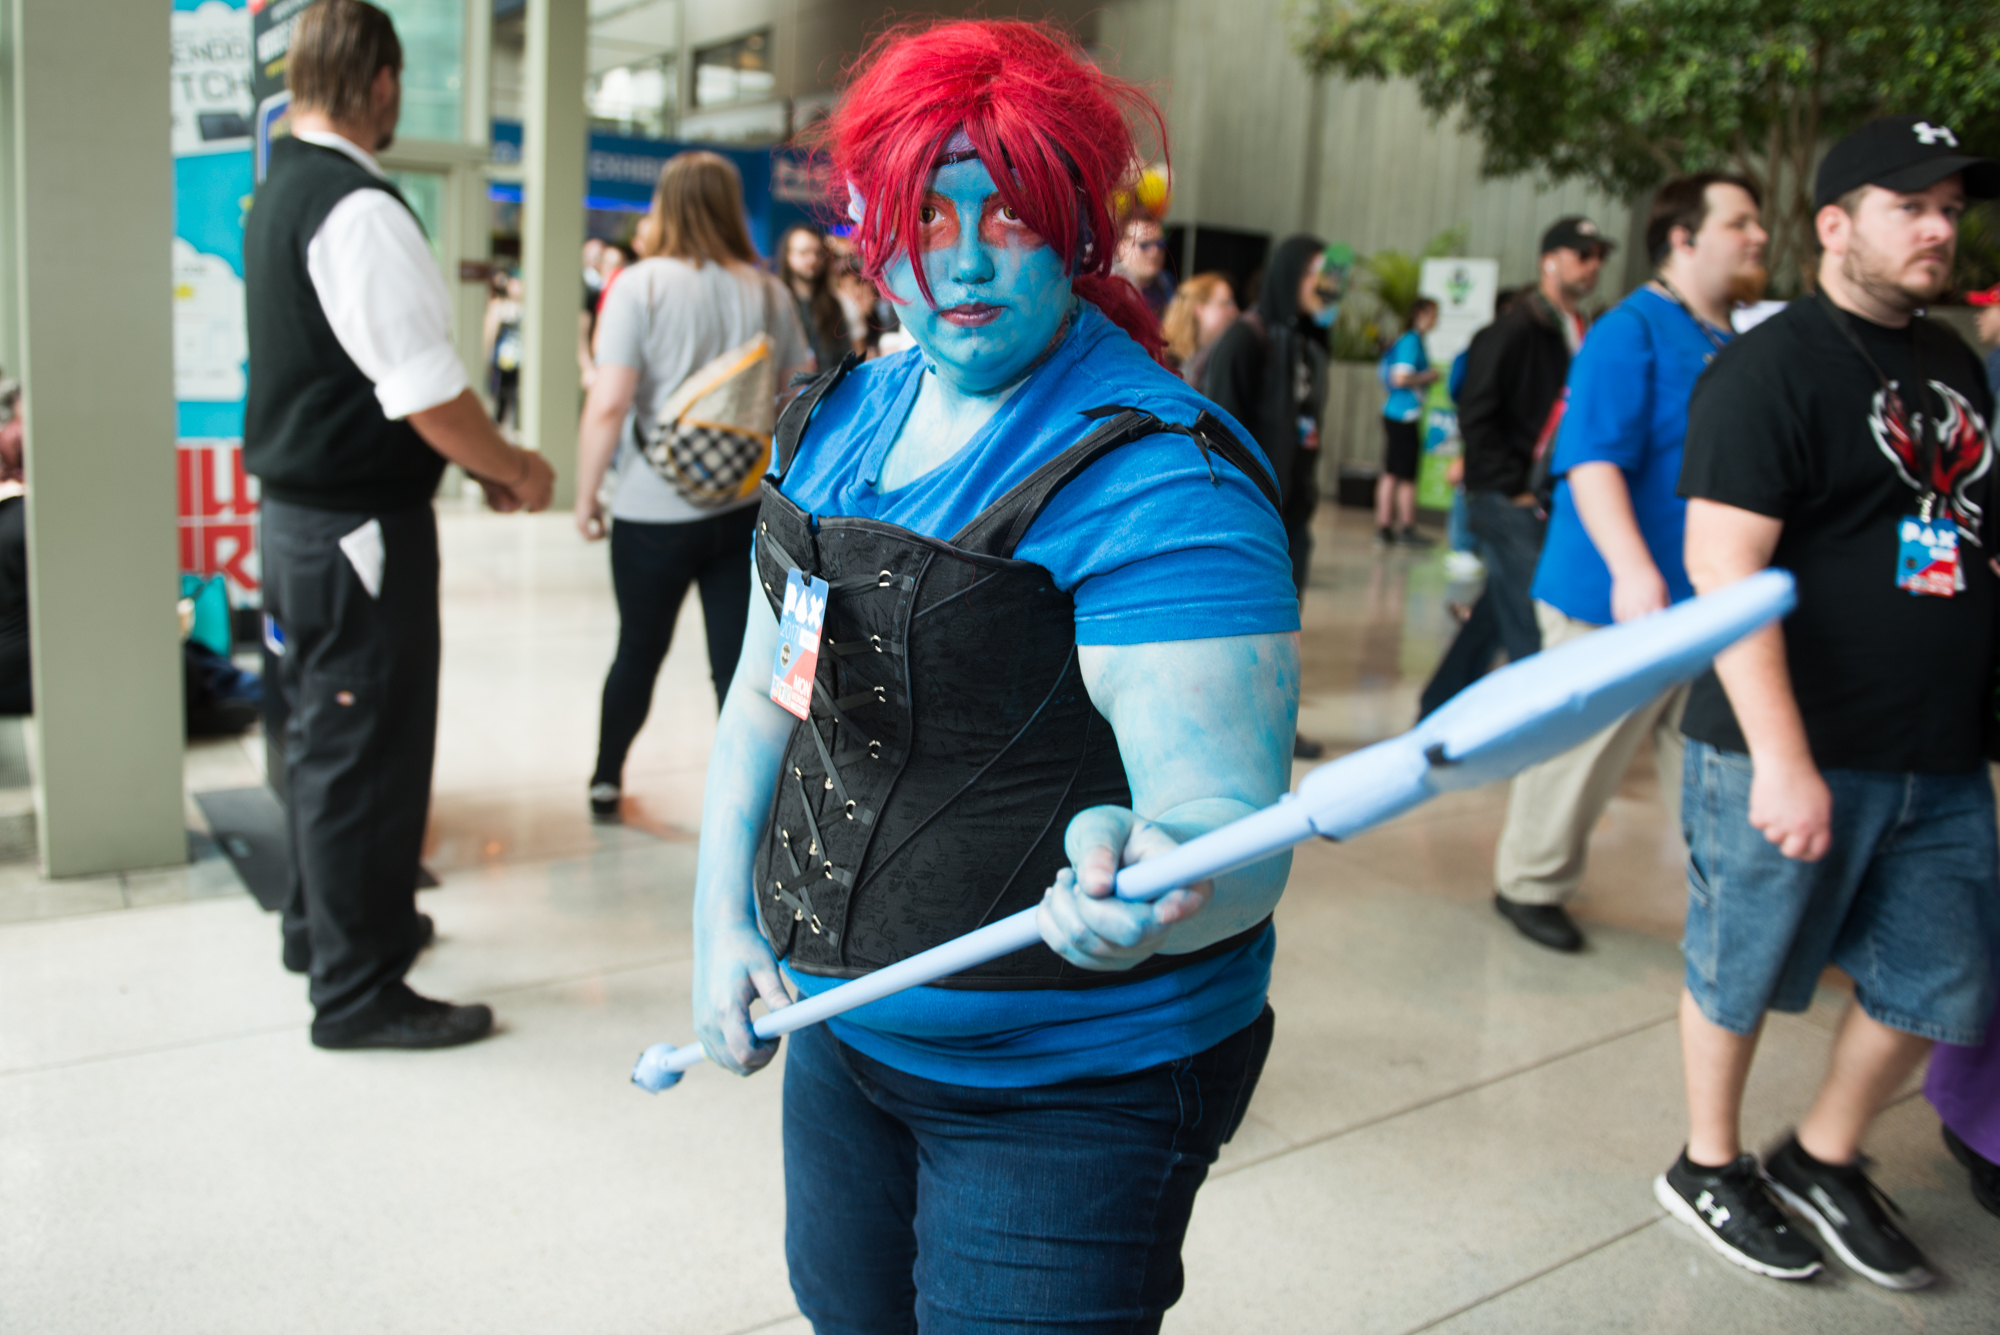 Seattle's Penny Arcade Expo (PAX West) brings tens of thousands of people to the Washington State Convention Center every year! PAX West includes concerts, arcade games, video game tournaments, cosplay and more - and runs the entirety of Labor Day Weekend( Sept. 1-4). (Image: Chona Kasinger / Seattle Refined)